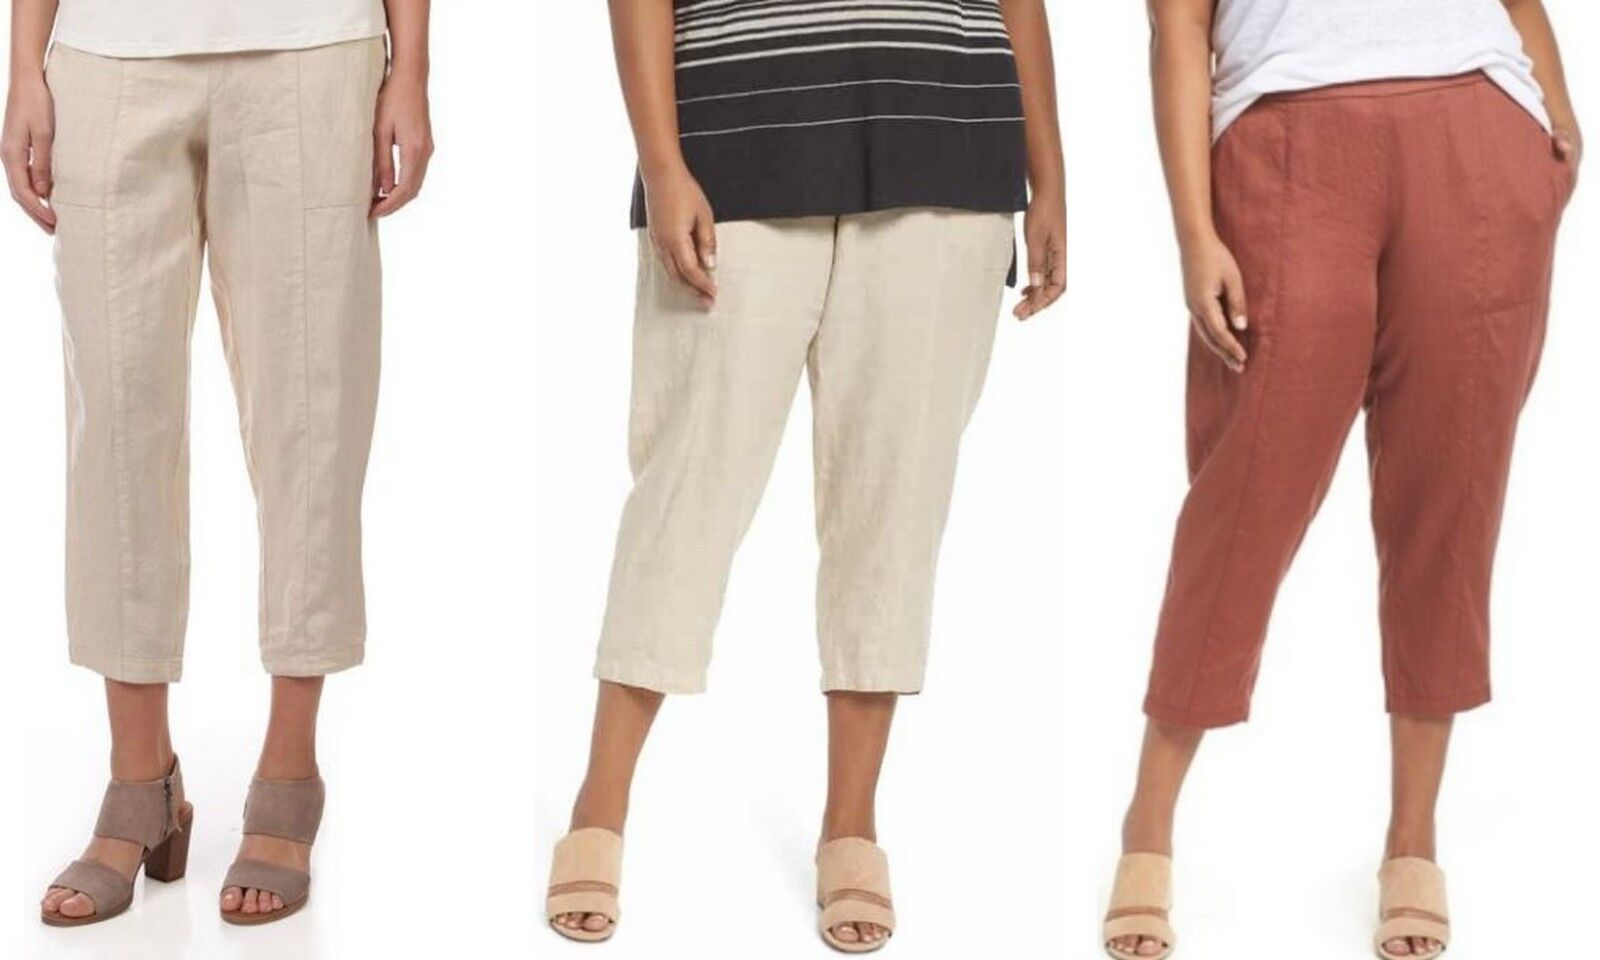 Eileen Fisher non teint lin naturel Cheville Cropped Pants Plus Taille 1X, 2X, 3X